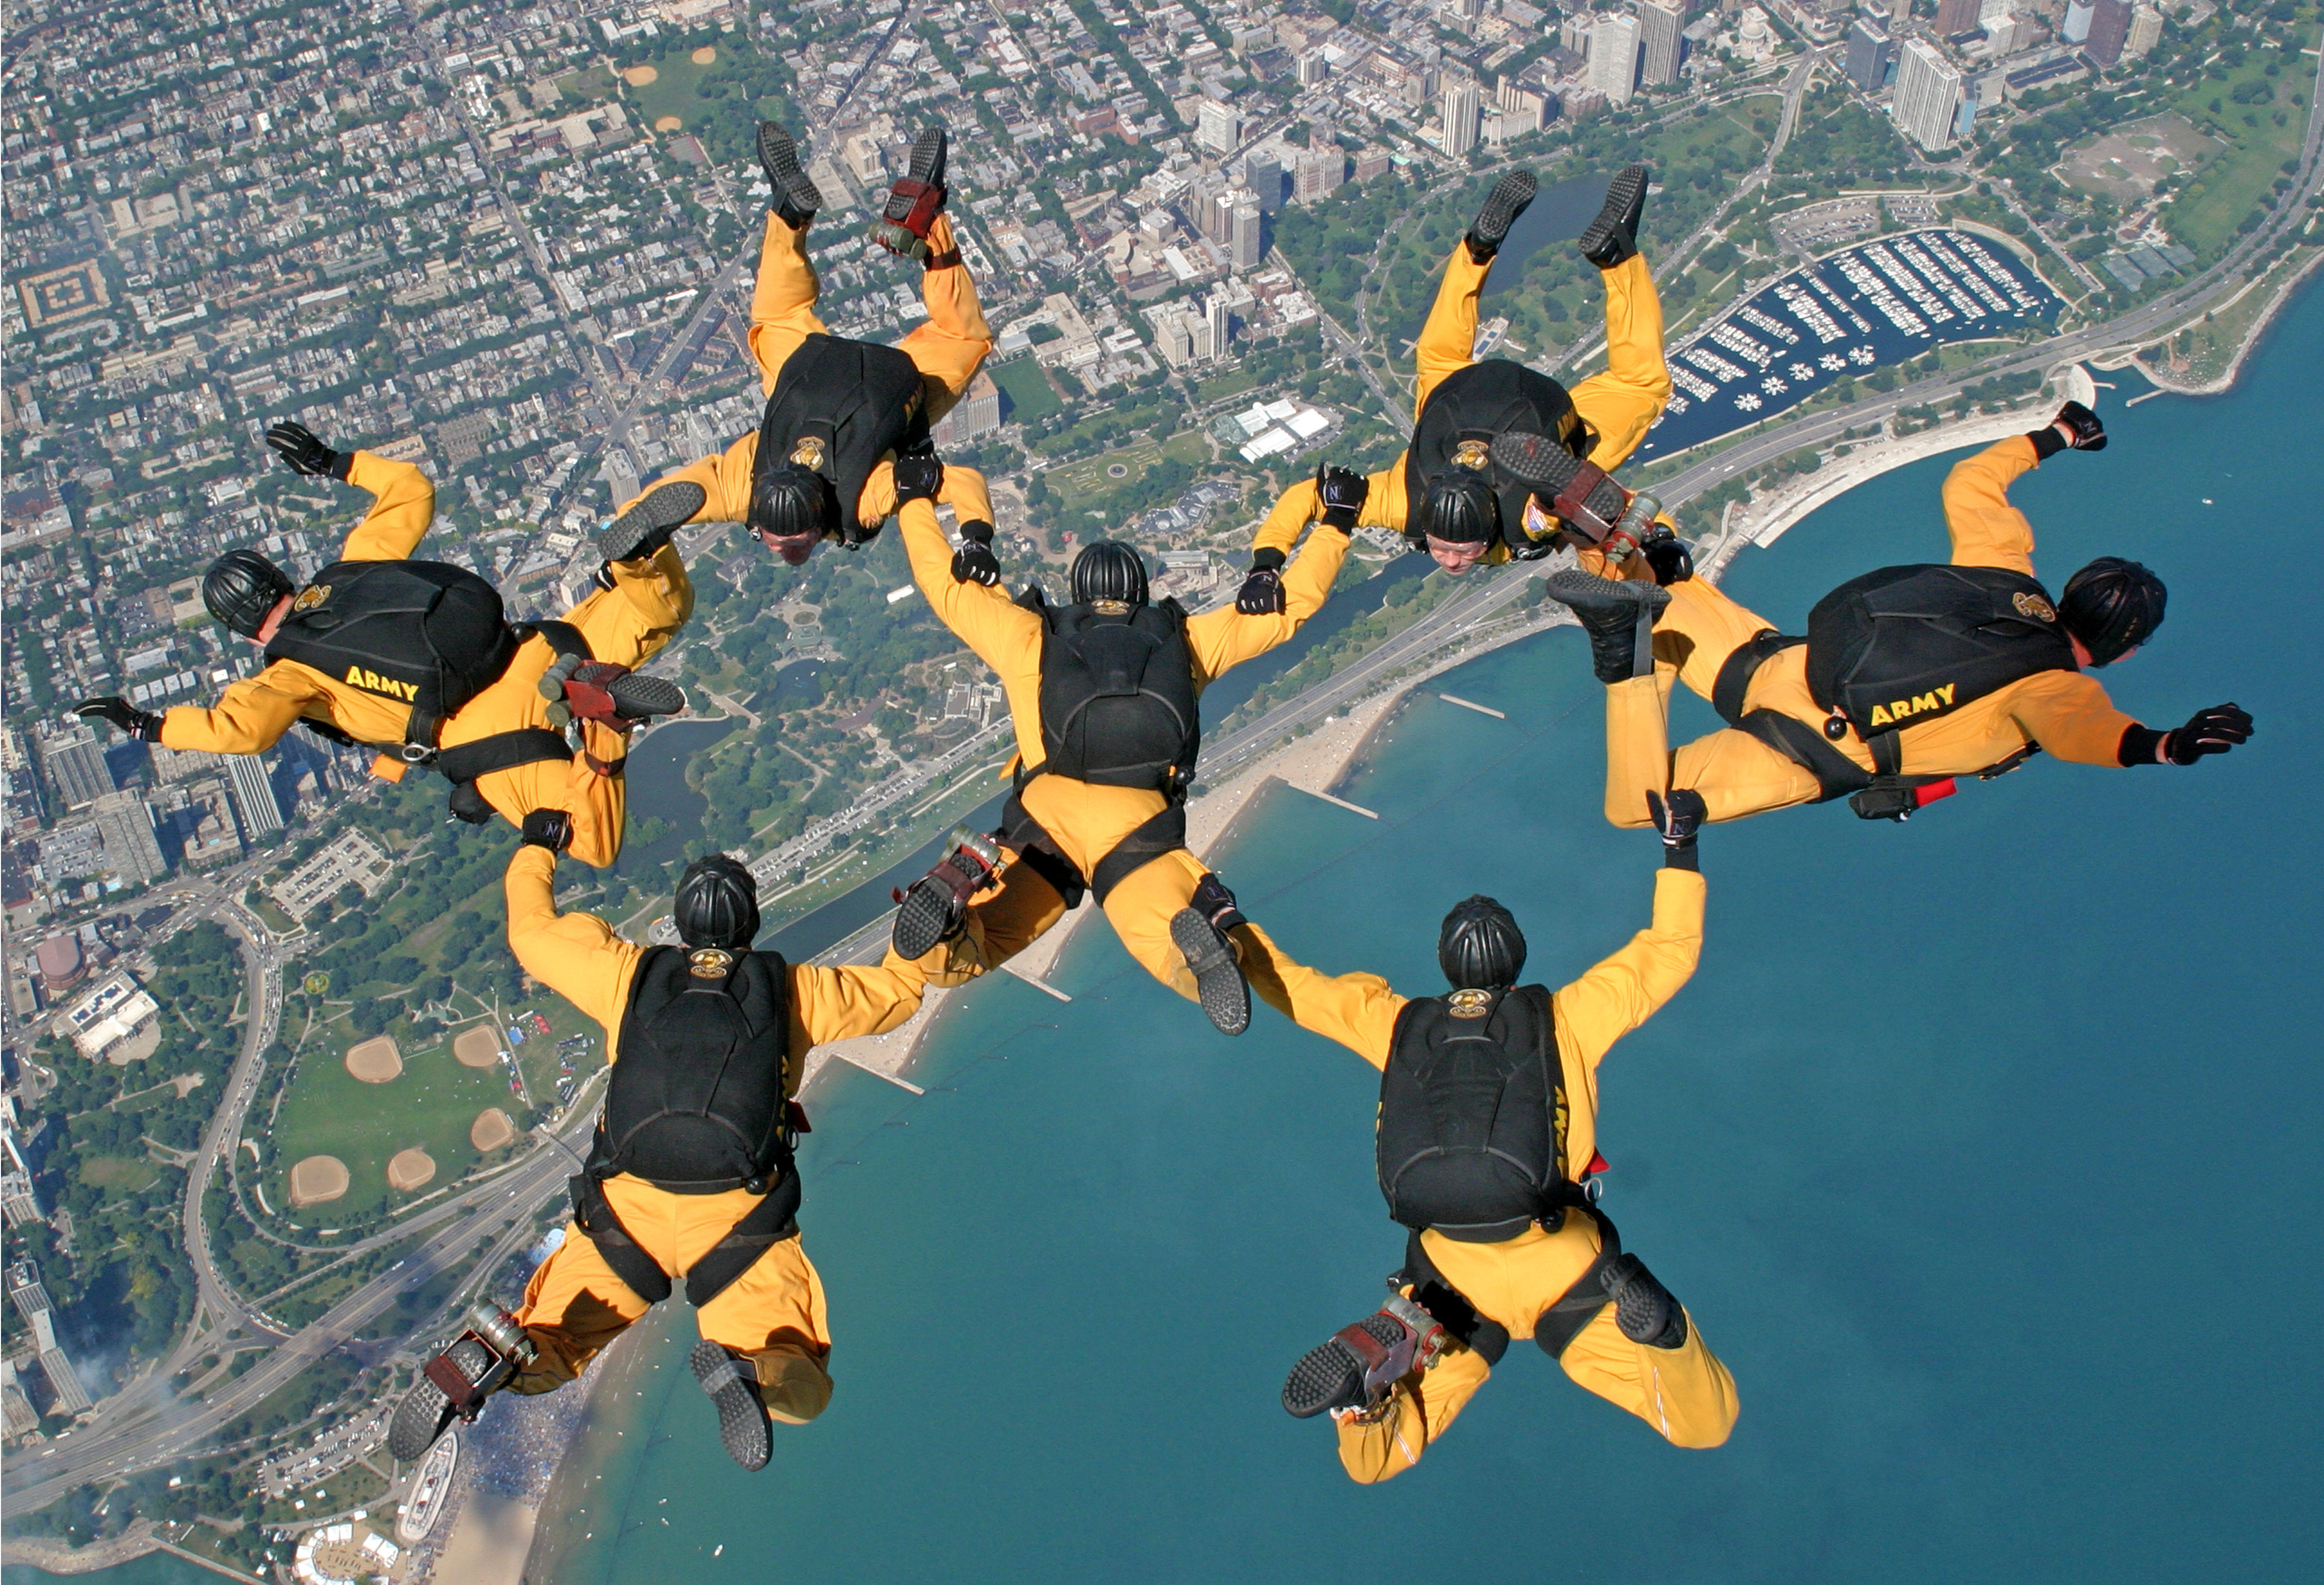 The Army Golden Knights again will descend toward Chicago at the Air & Water Show this weekend.